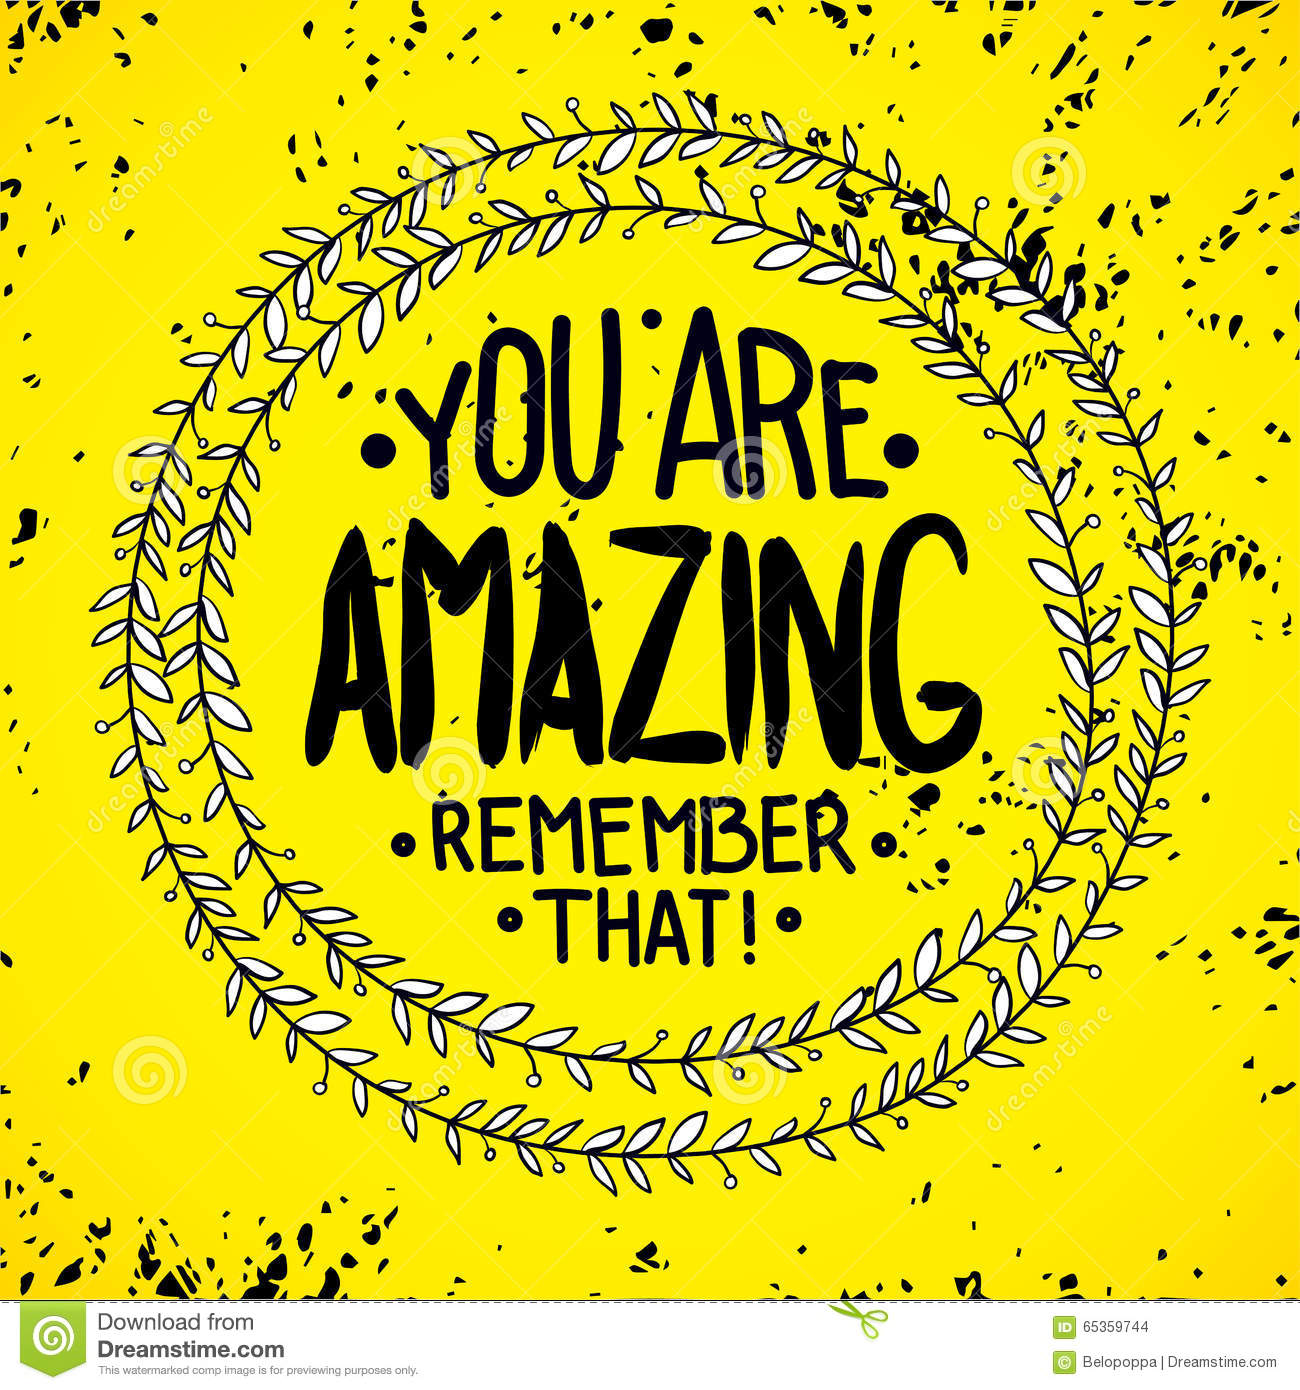 You Are Amazing Quotes You Are Amazing. Remember That. Inspirational Quotes Stock Vector  You Are Amazing Quotes